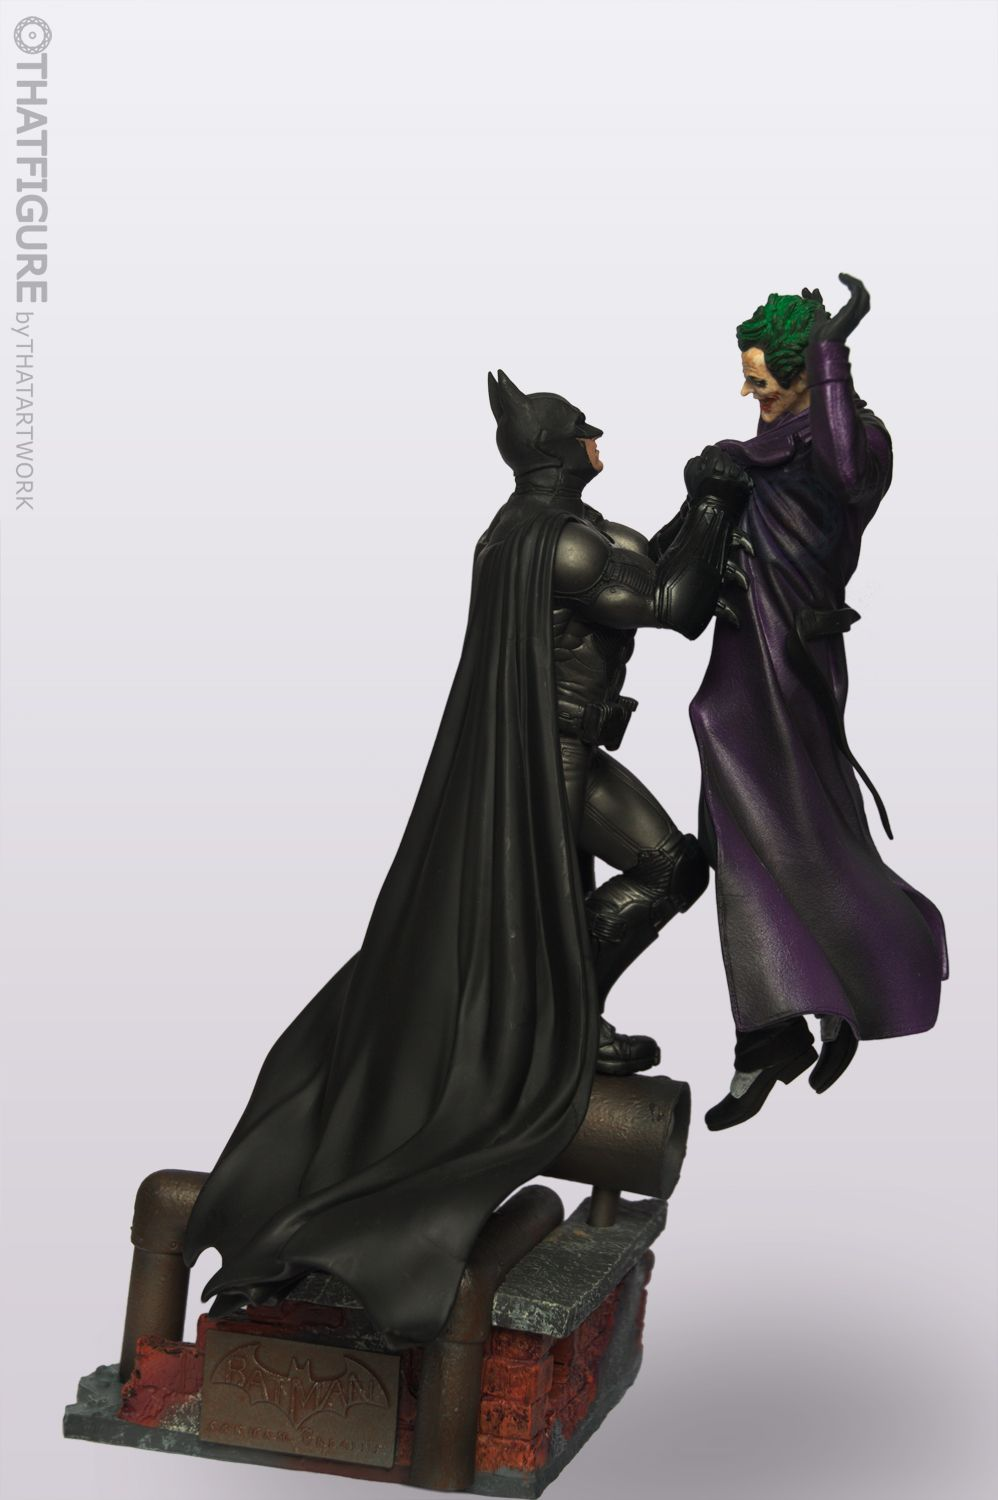 Statue included in the Collectoru0027s Edition of